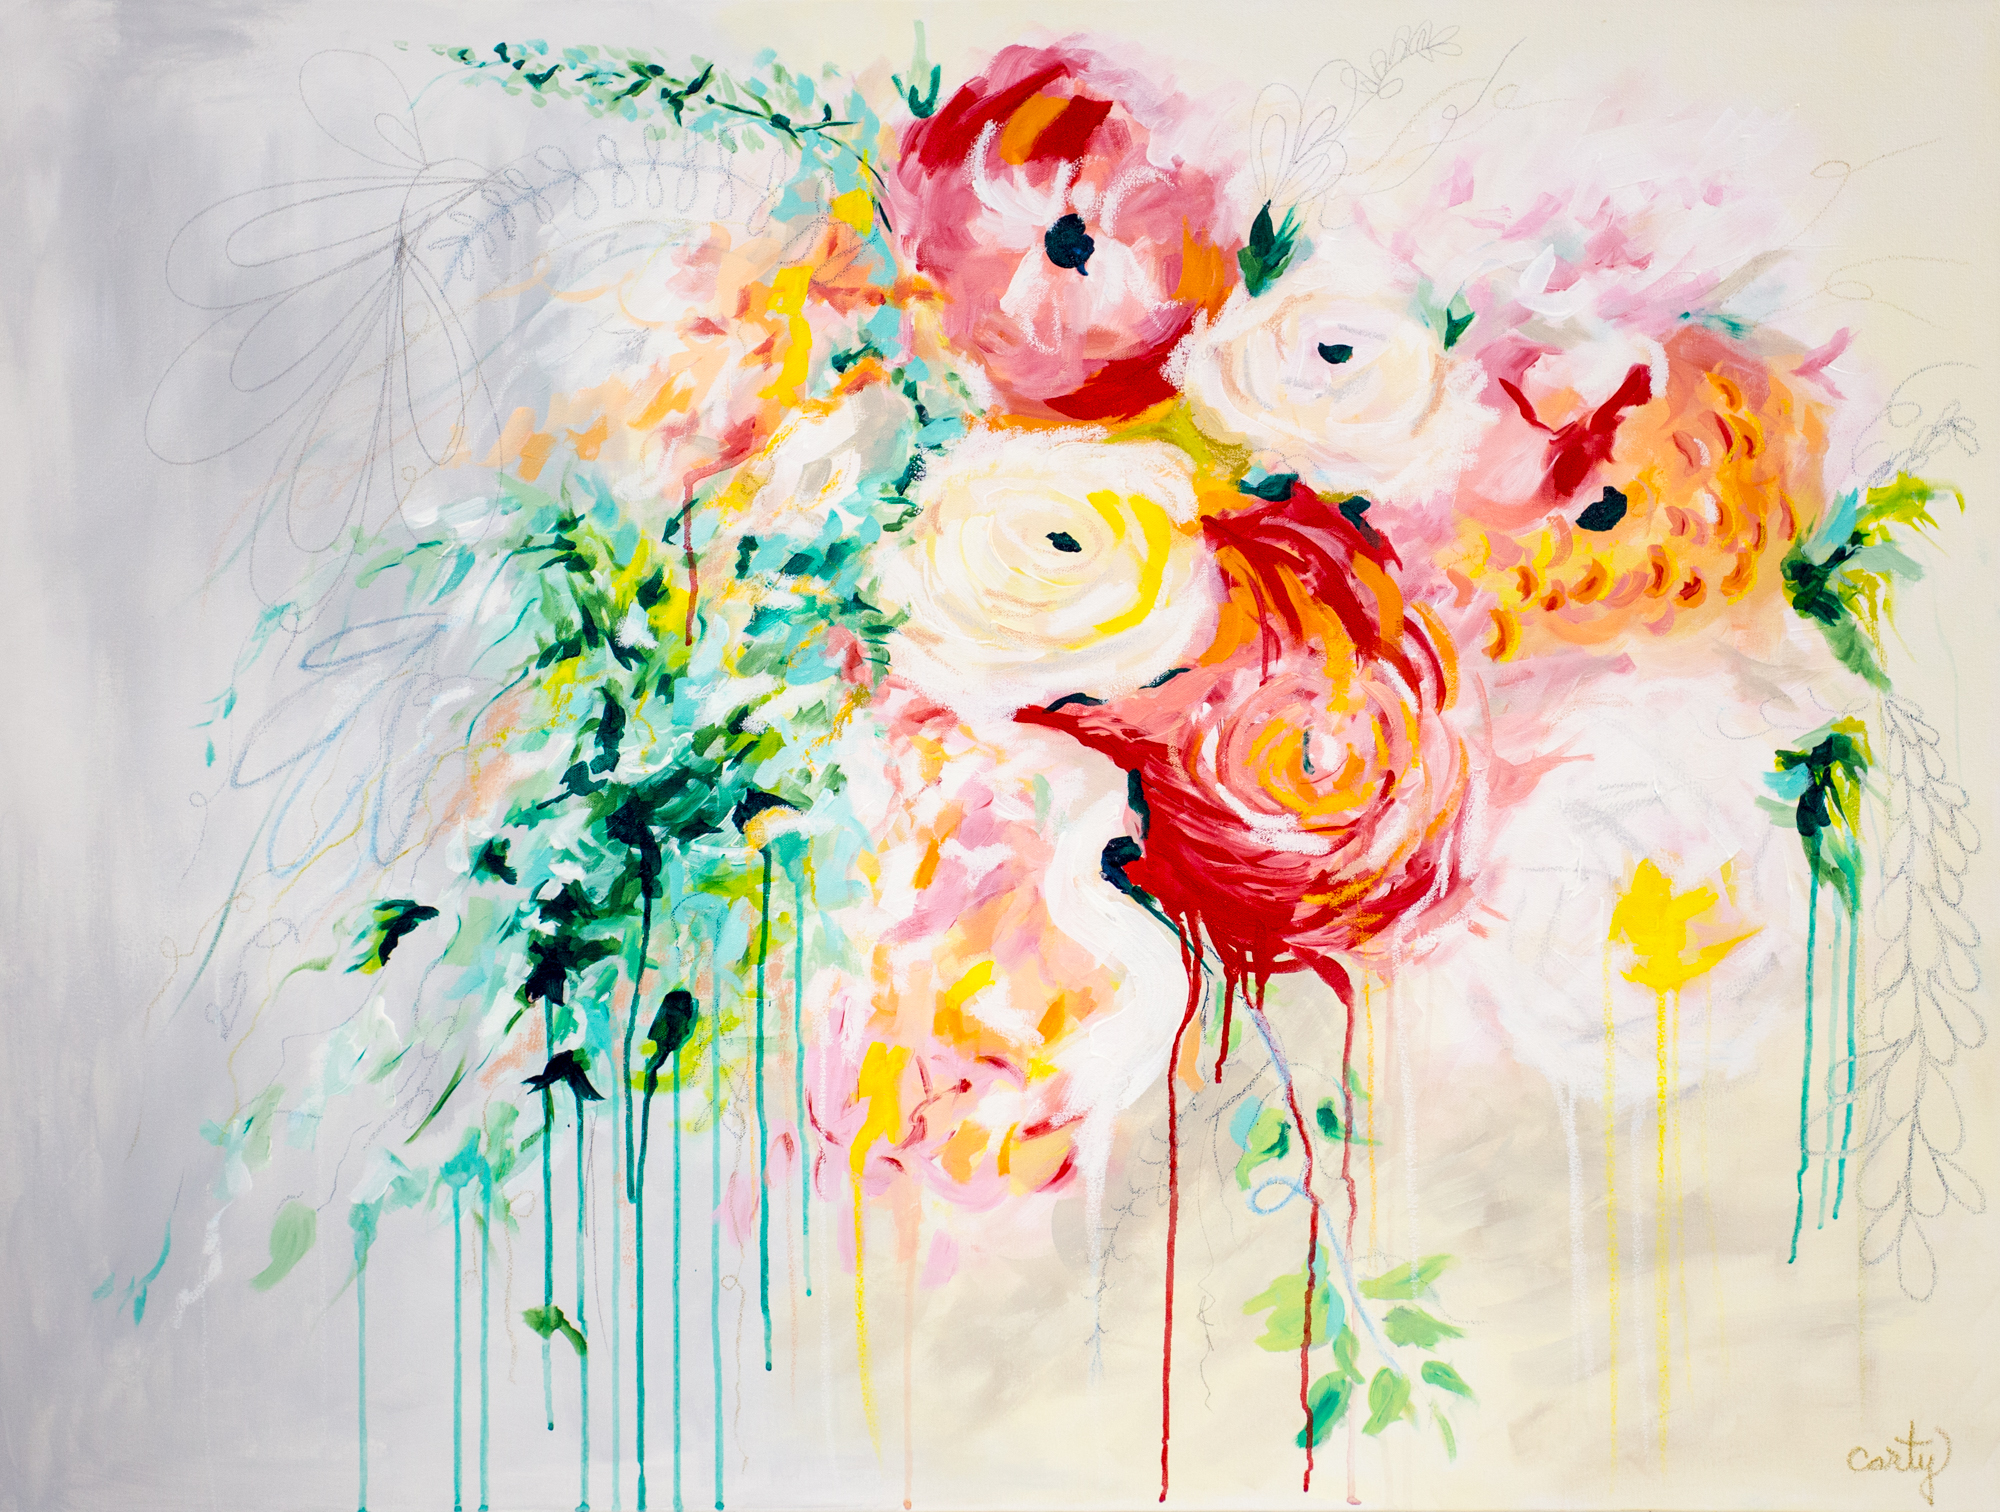 Bespoke wedding bouquet painting commission by megan carty